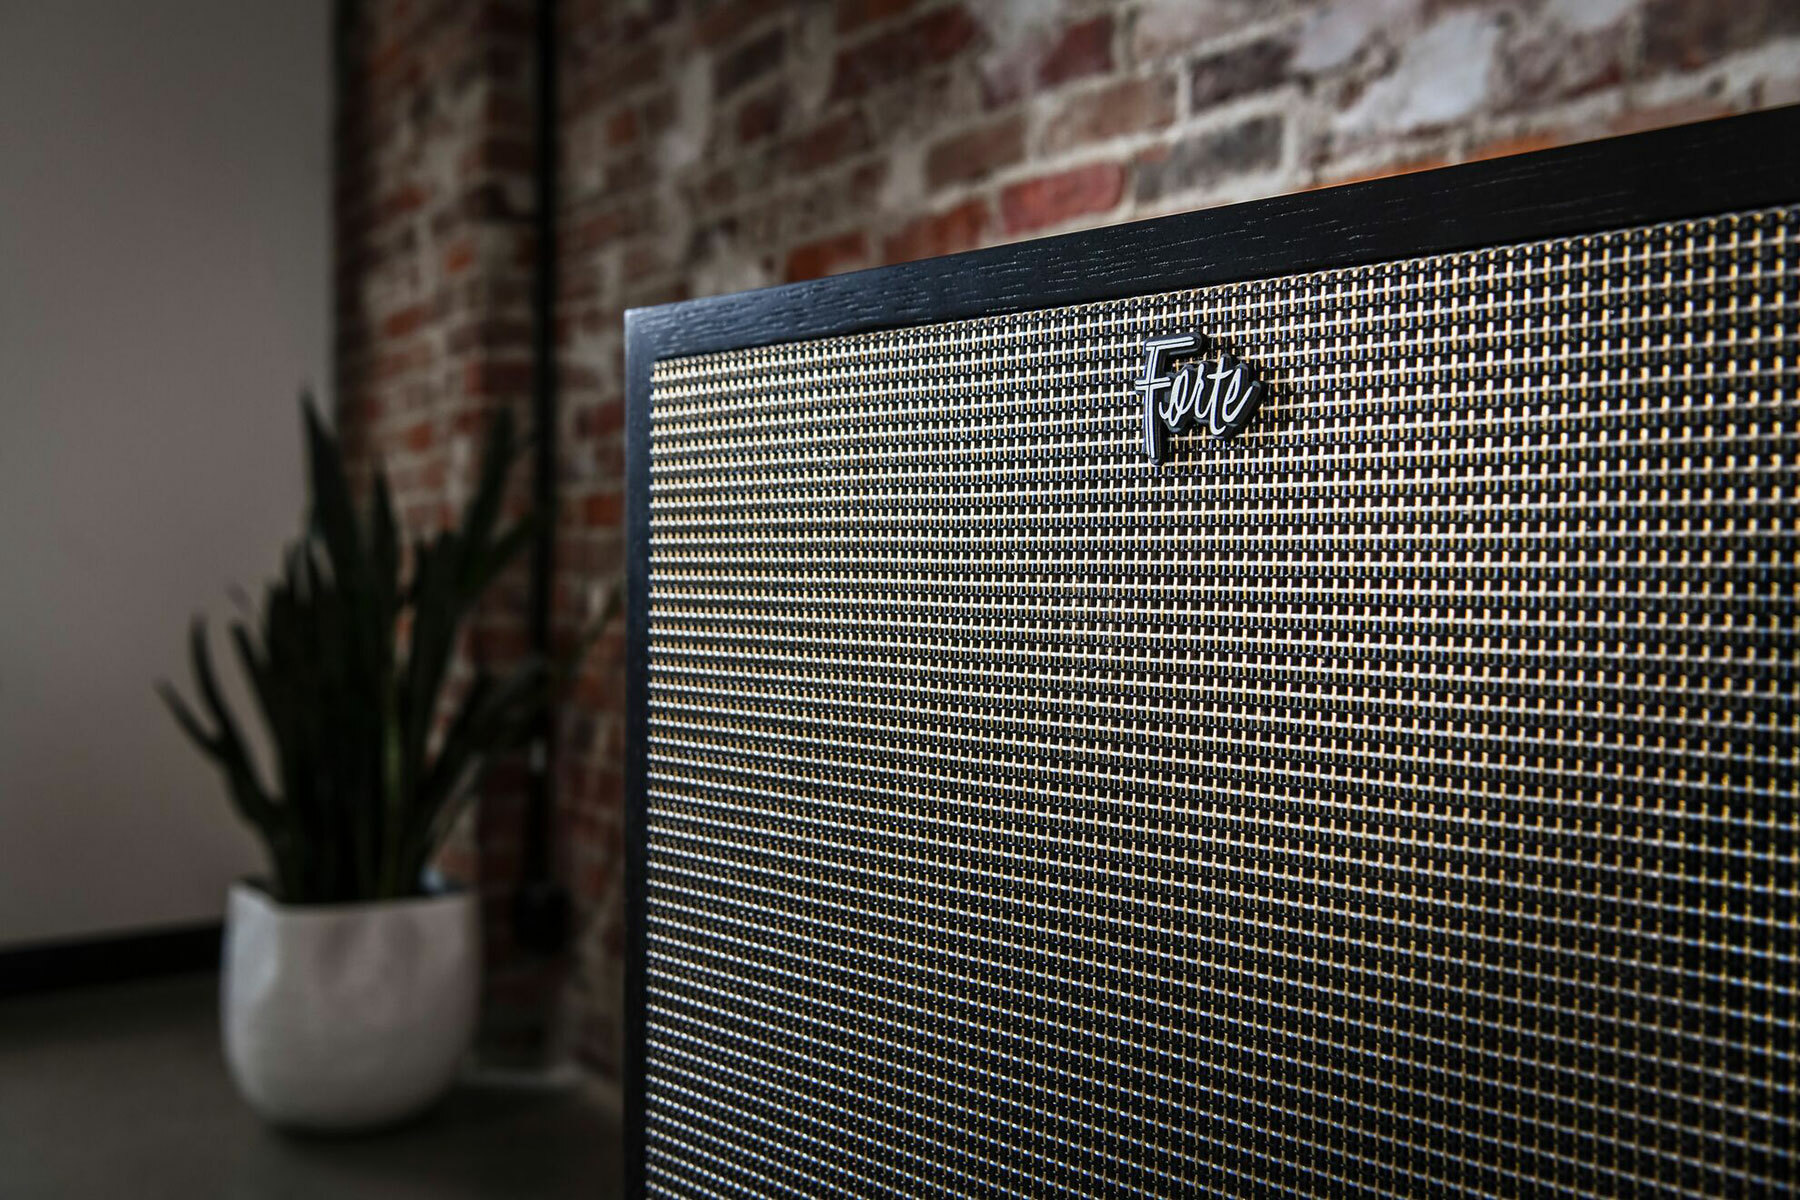 Forte IV black ash loudspeaker with grille up close against a brick wall